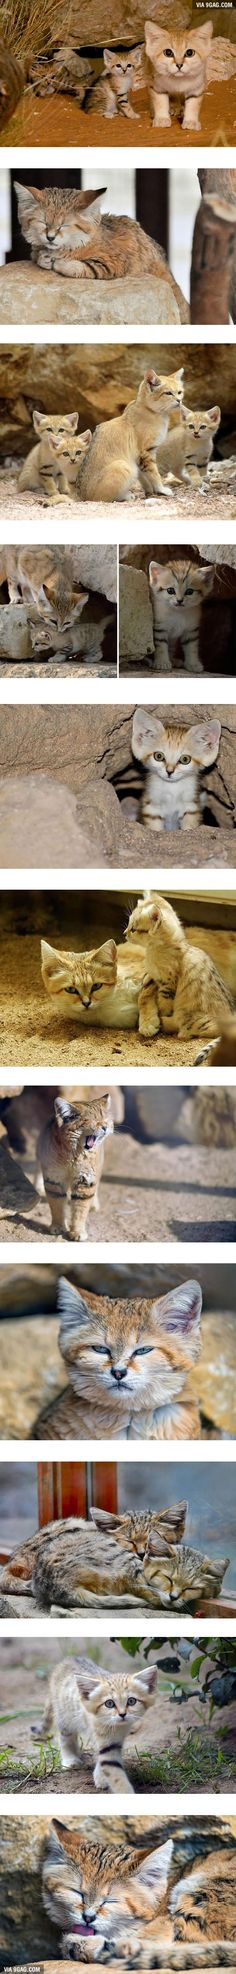 Sand Cats Probably The Cutest Cats Ever! - http://www.facebook.com/viralpx